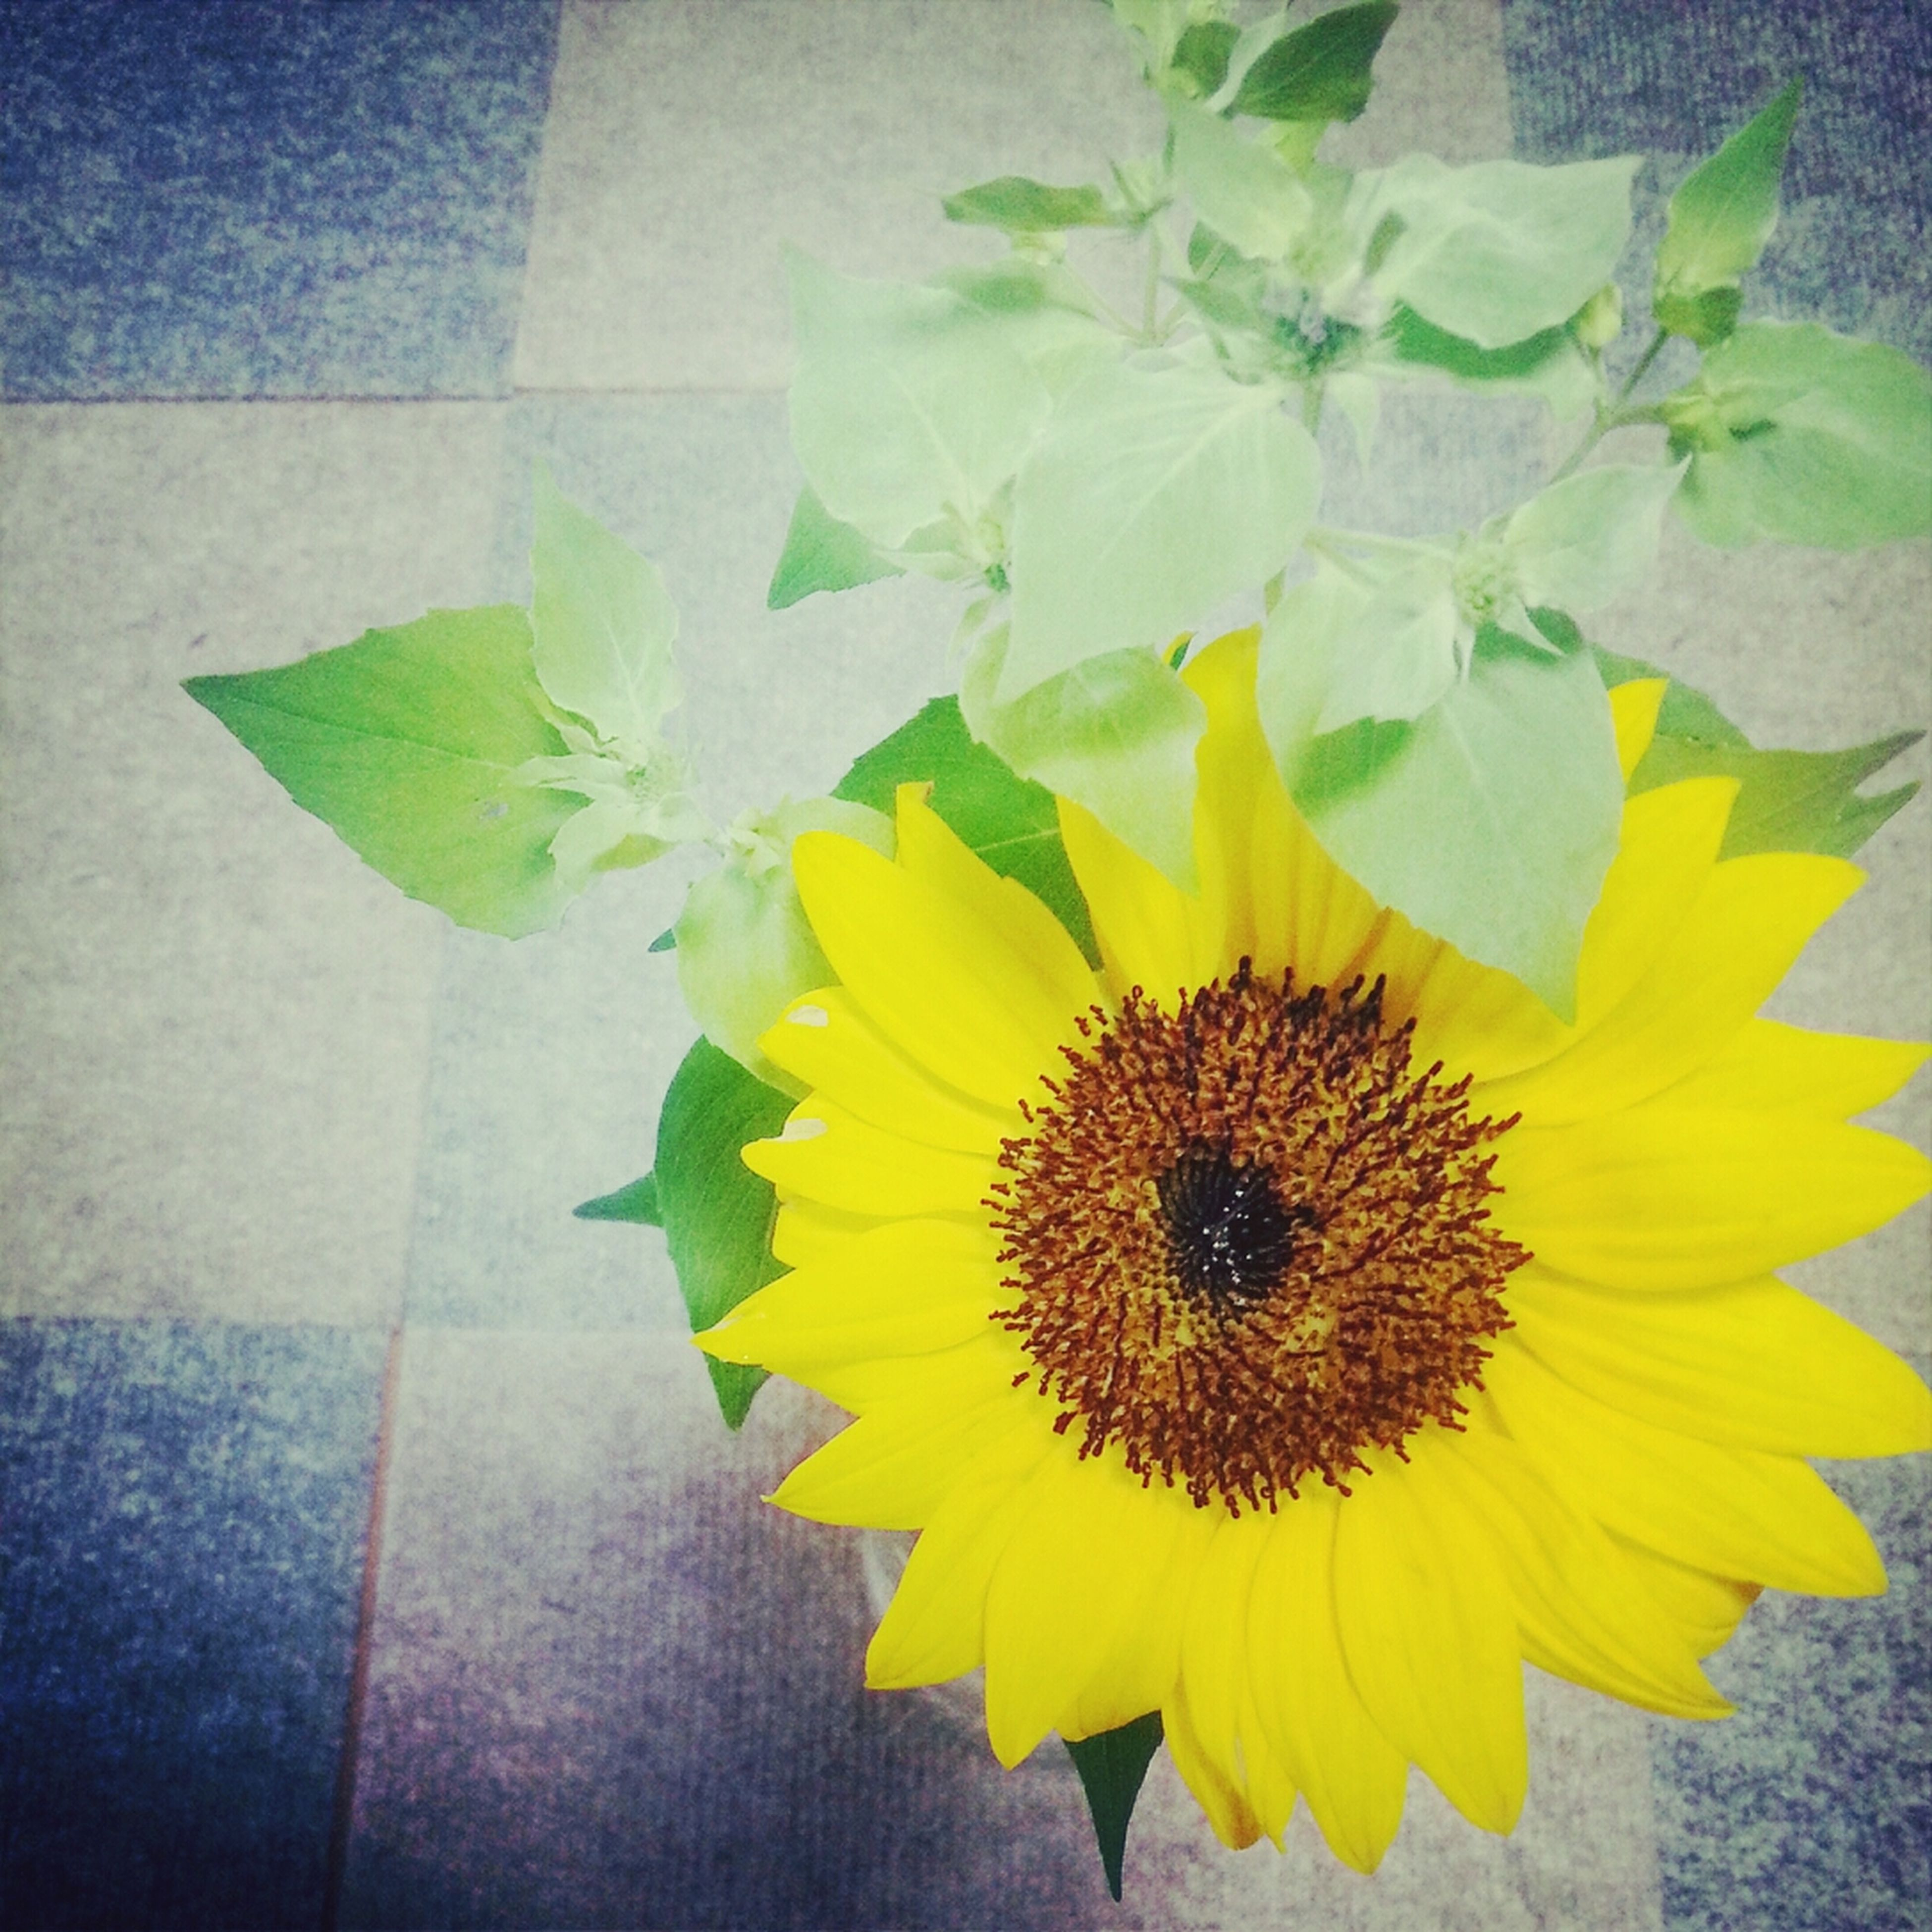 flower, yellow, petal, flower head, freshness, fragility, indoors, plant, leaf, wall - building feature, potted plant, close-up, vase, growth, sunflower, high angle view, pollen, decoration, beauty in nature, nature